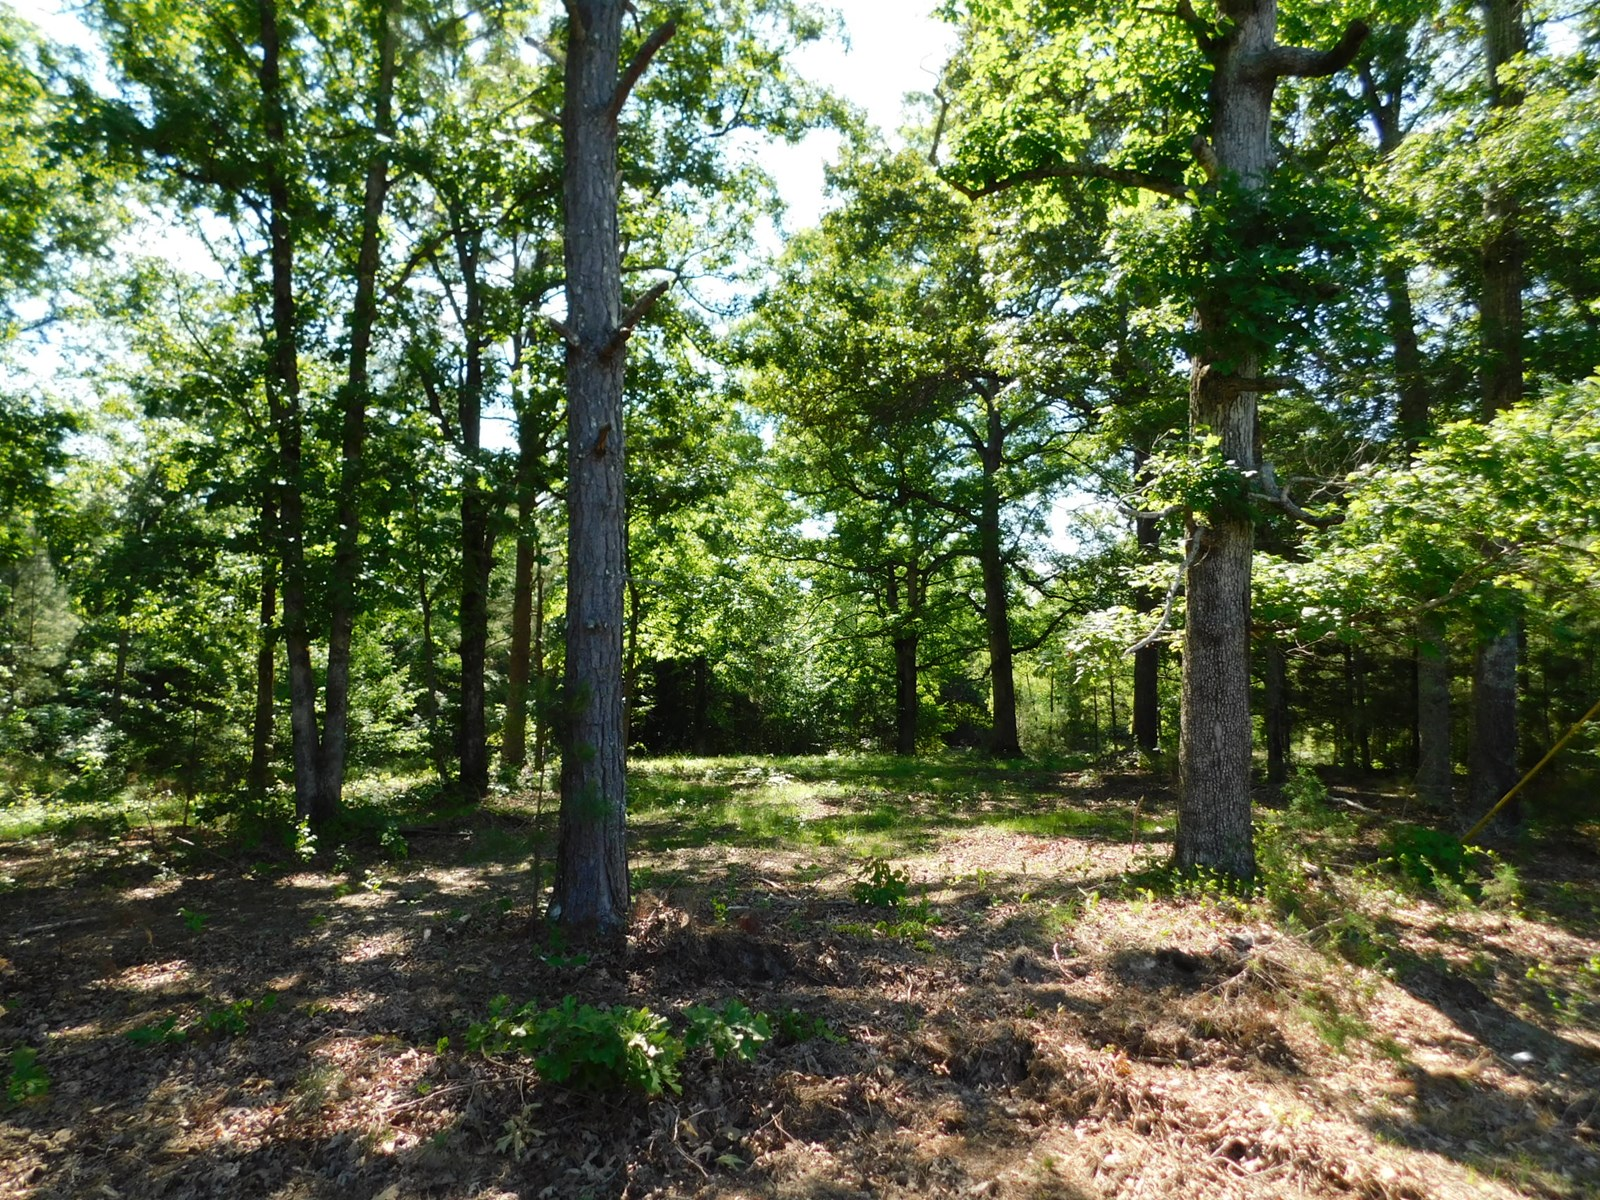 LAND FOR SALE IN TN NEAR SHILOH TO BUILD A CABIN OR HOME ON